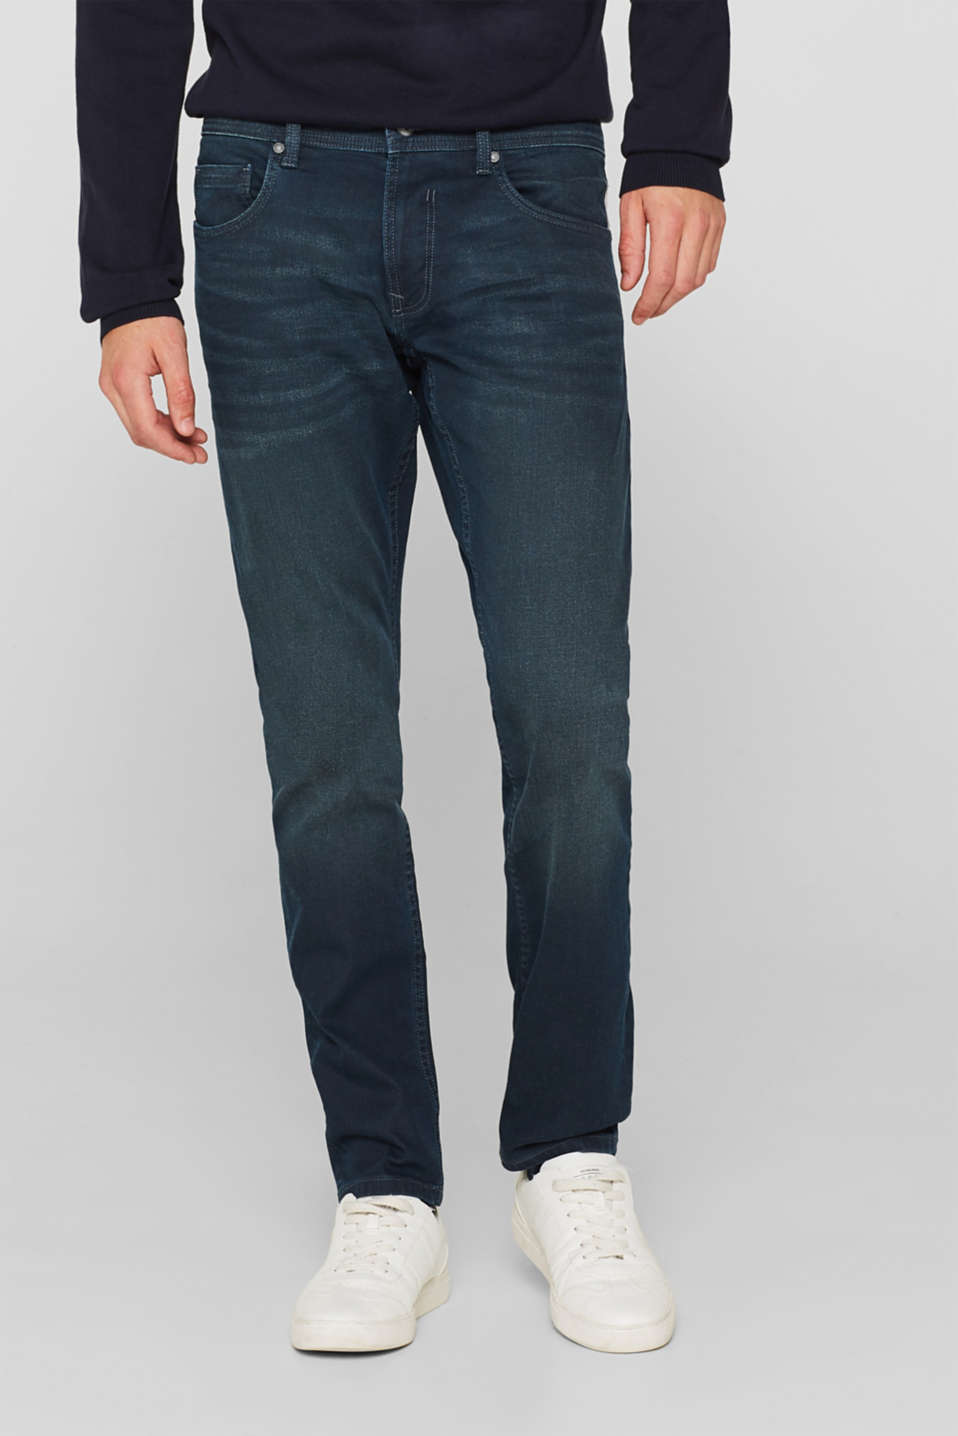 edc - Stretch jeans in a coated finish